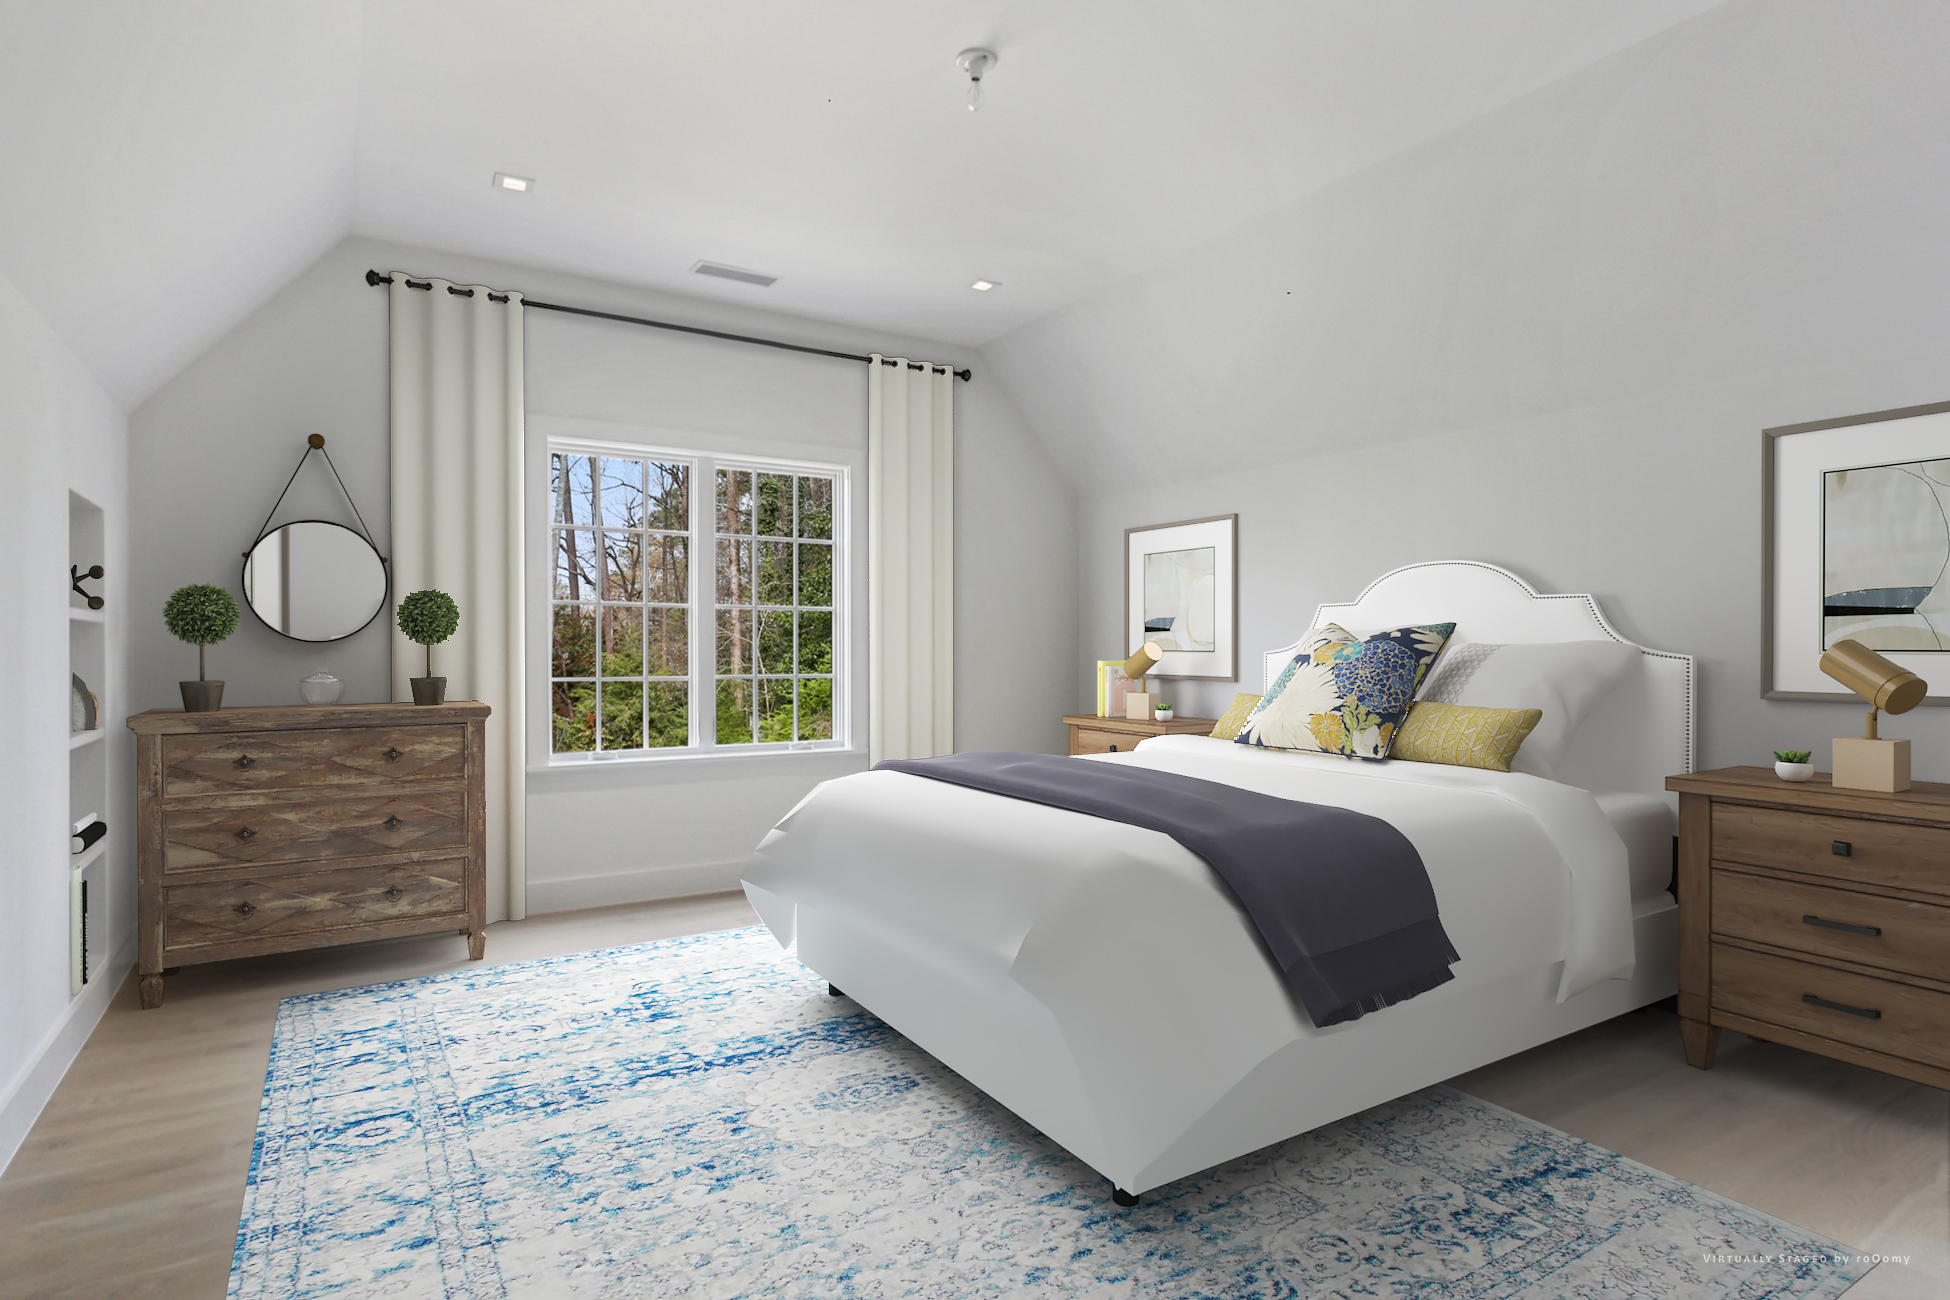 Bedroom1 - Transitional_Render (2).jpg